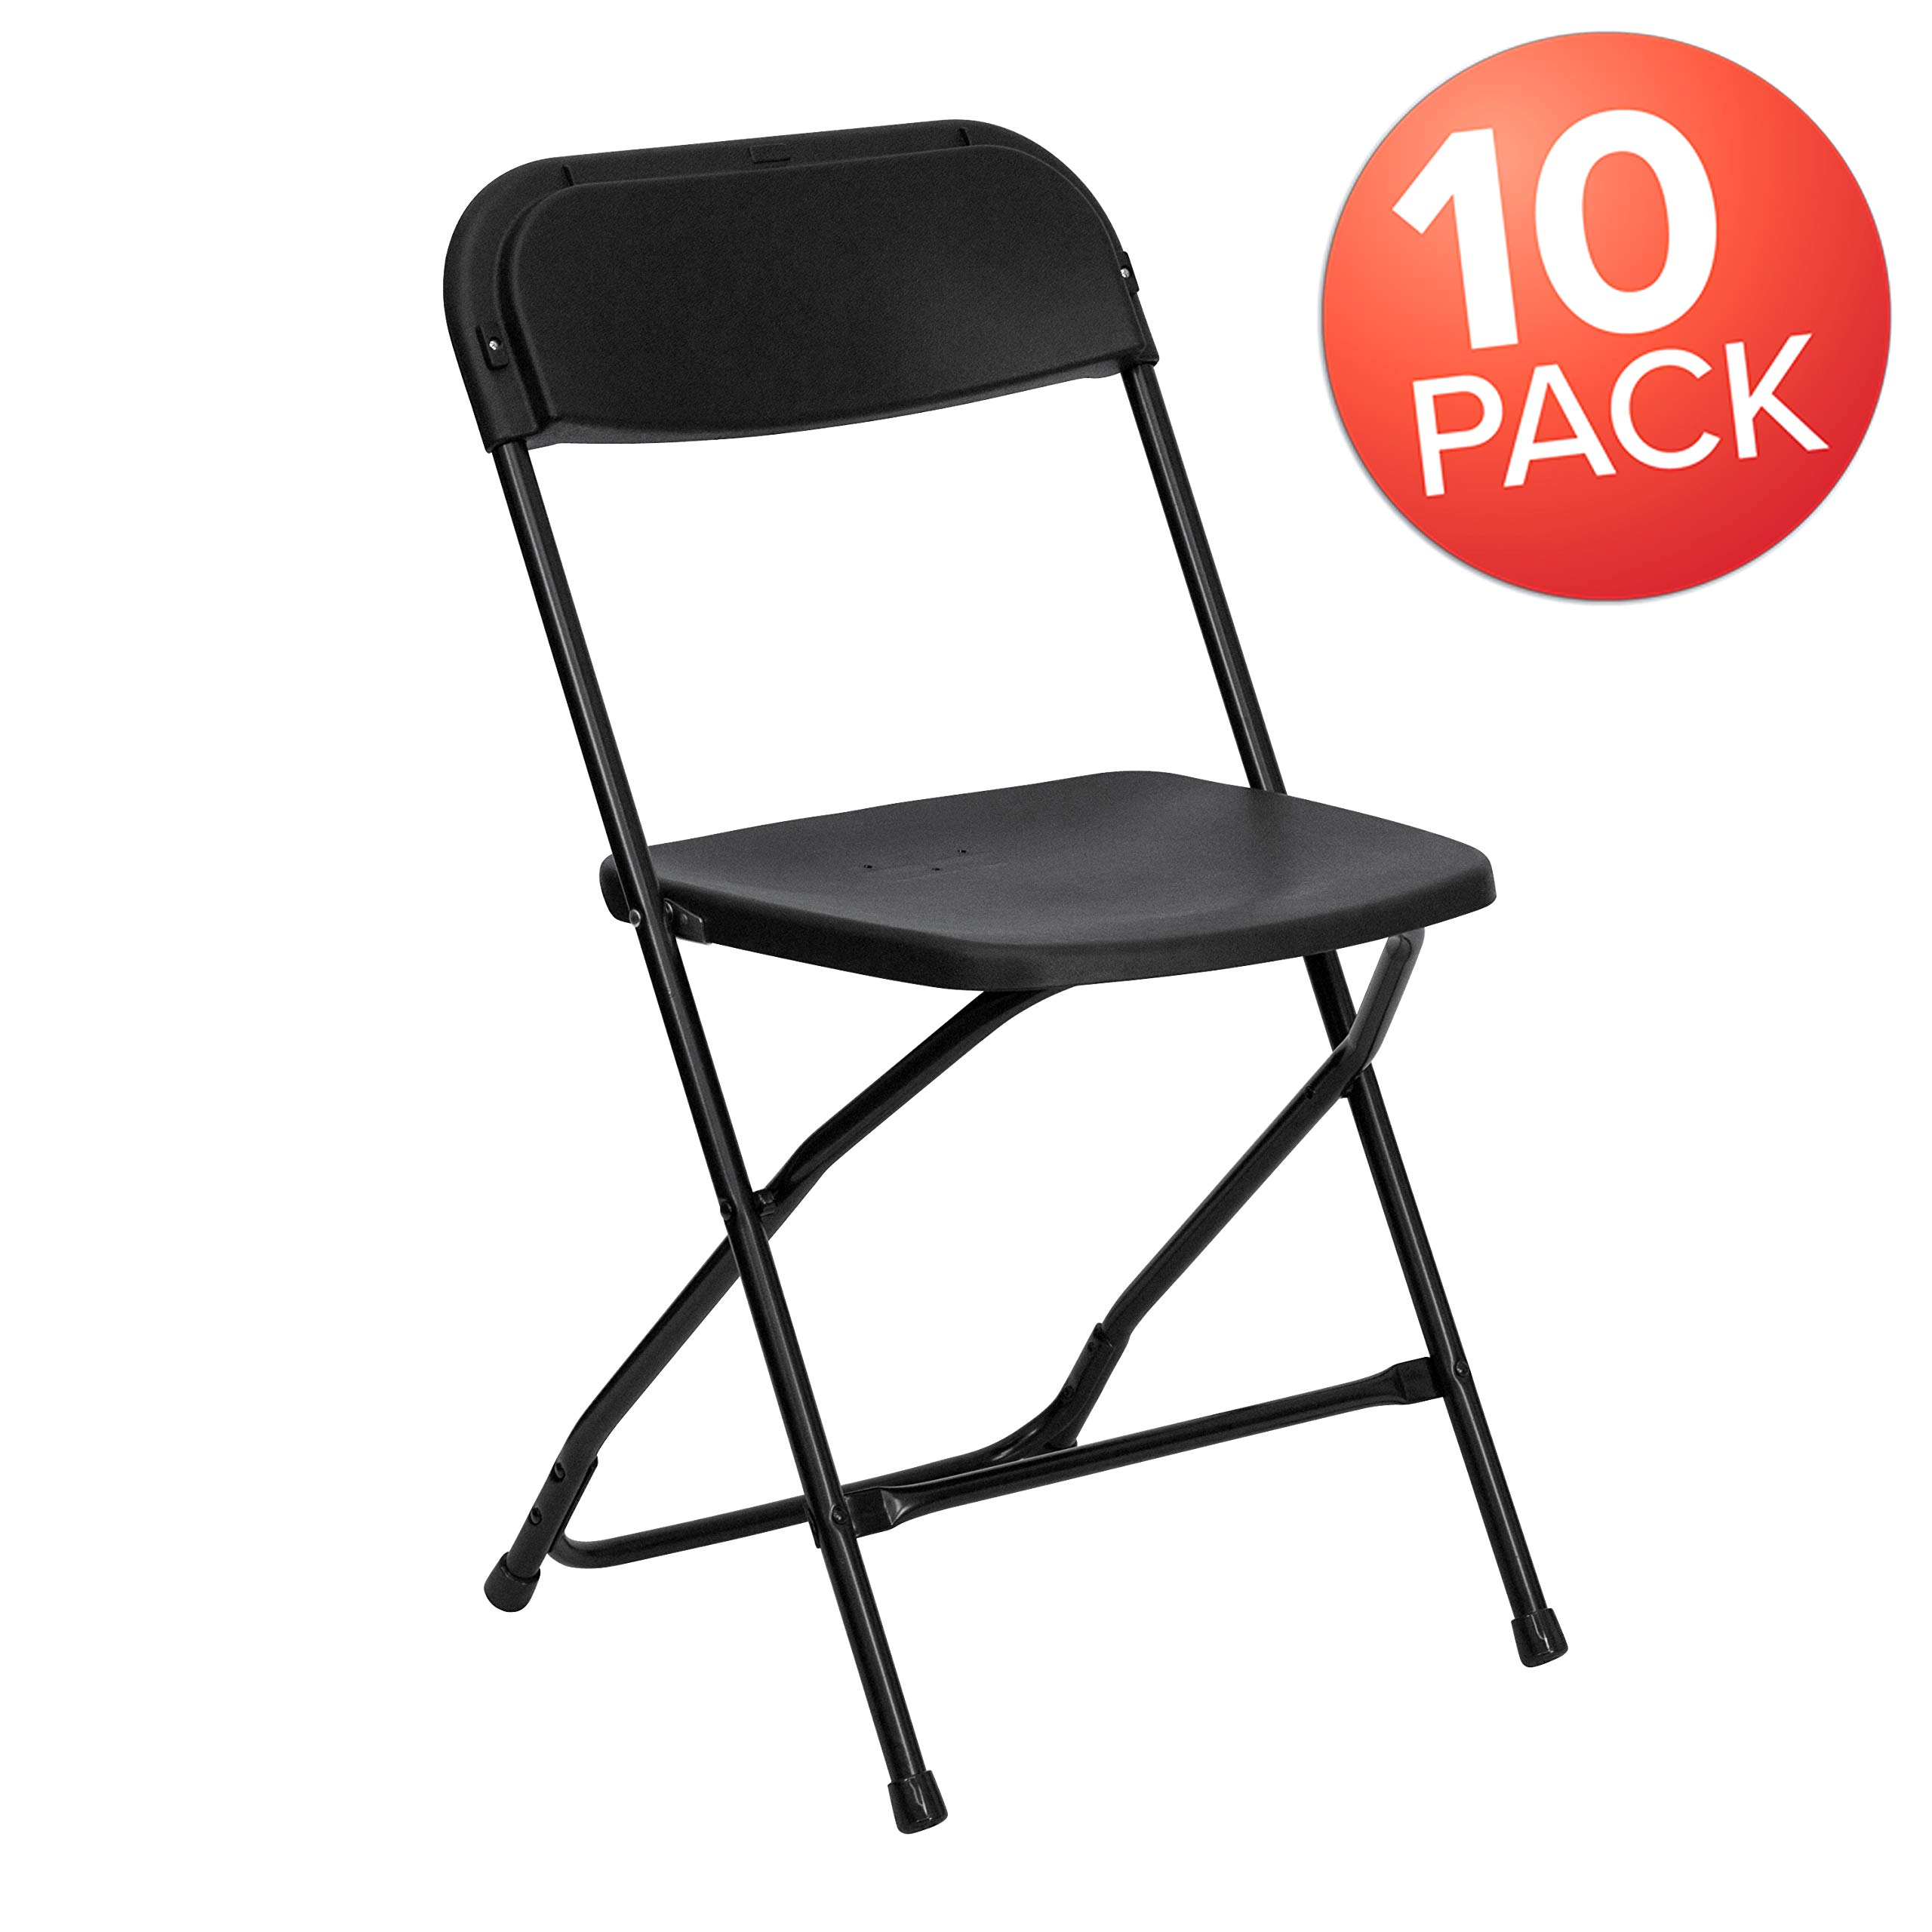 Flash Furniture 10 Pk. HERCULES Series 650 lb. Capacity Premium Black Plastic Folding Chair by Flash Furniture